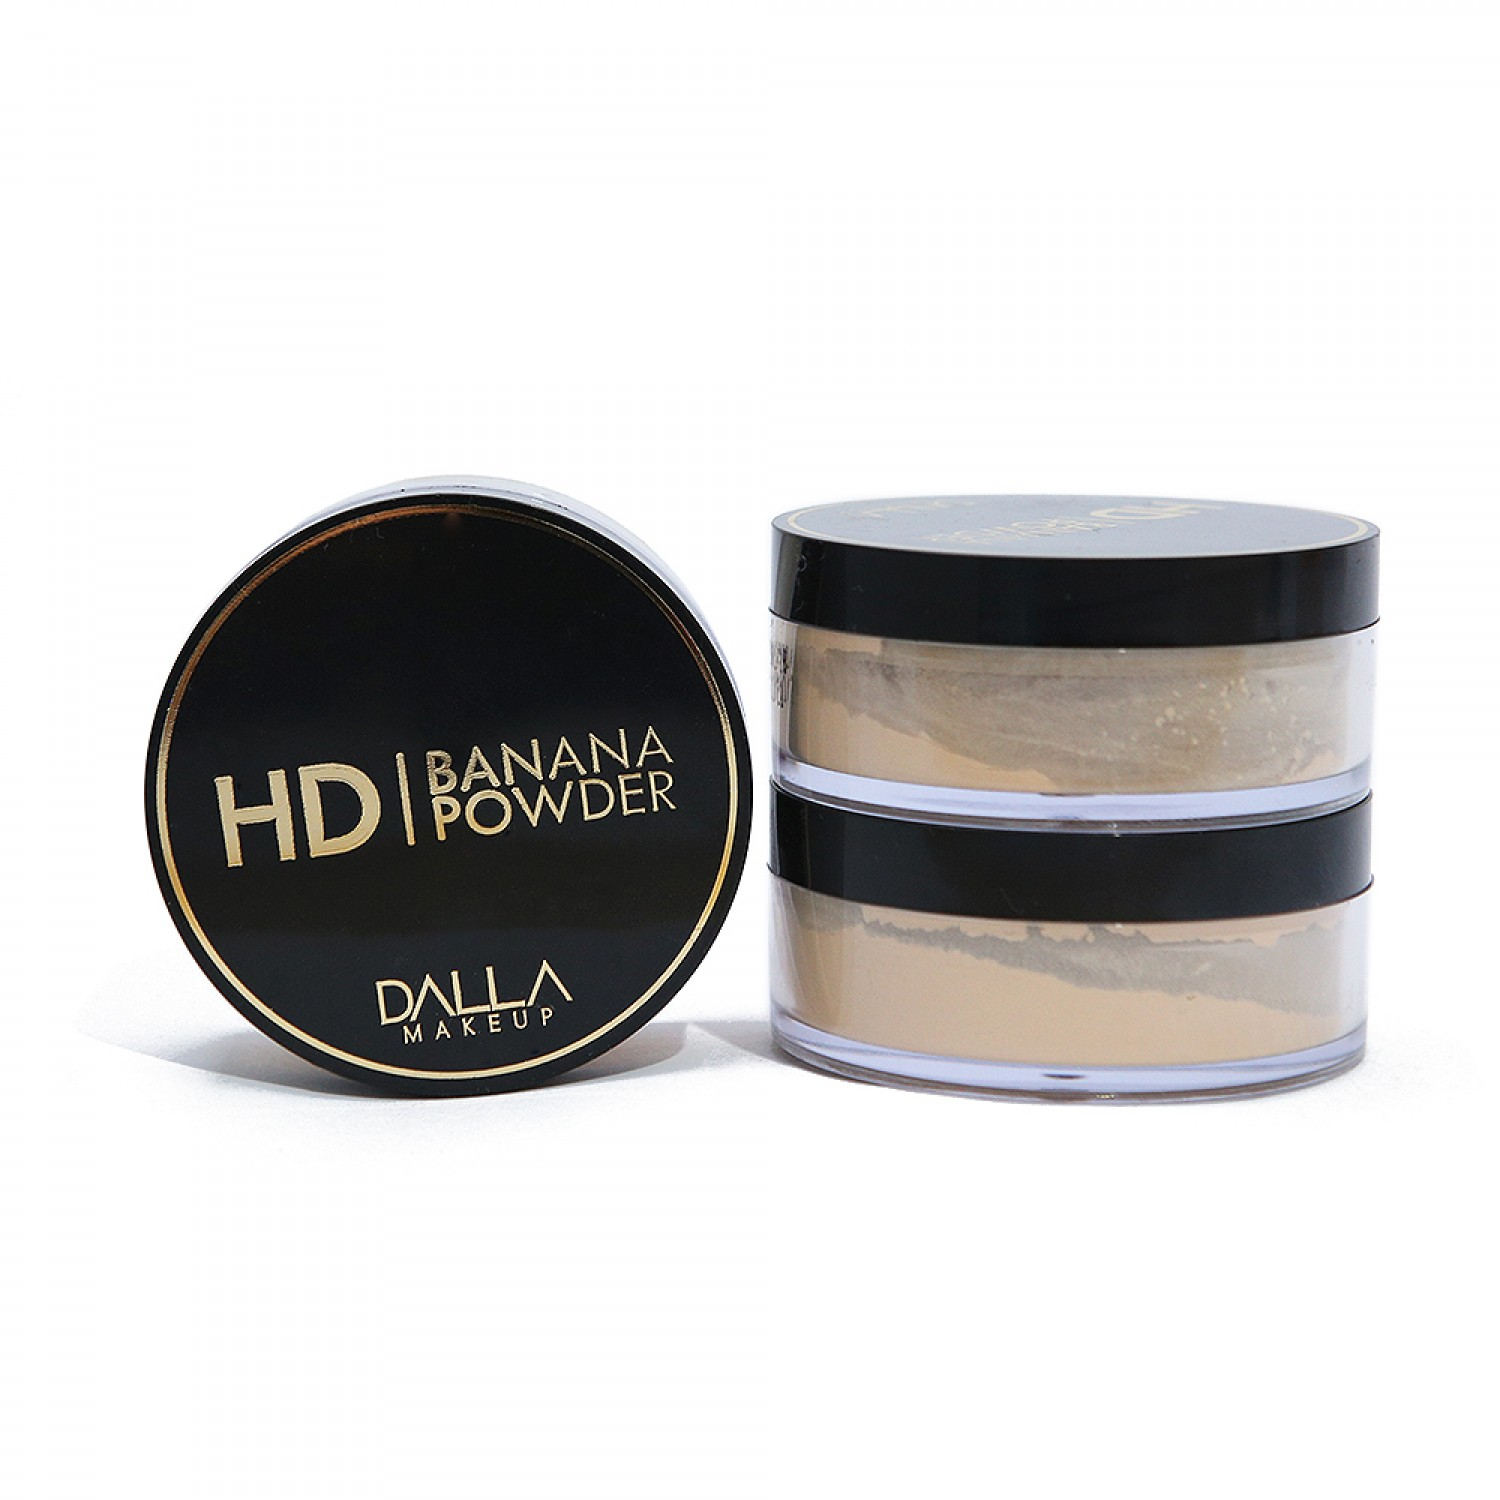 Banana Powder HD Vegano Dalla Make Up